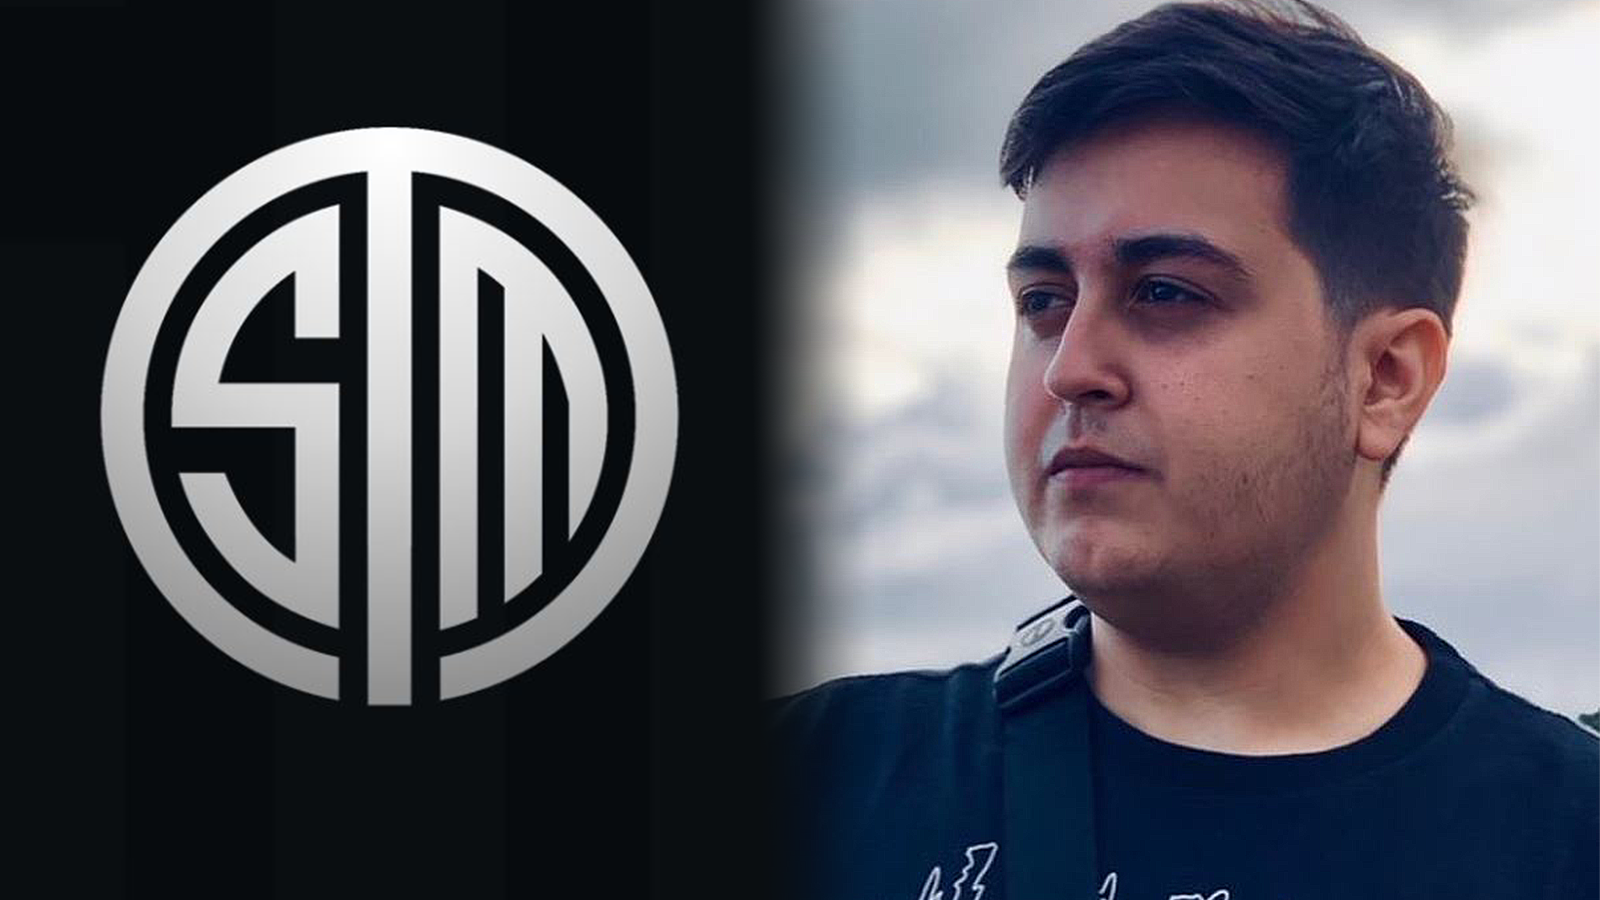 The TSM logo is positioned side-by-side with a photo of Pokelawls looking wistfully into the distance.